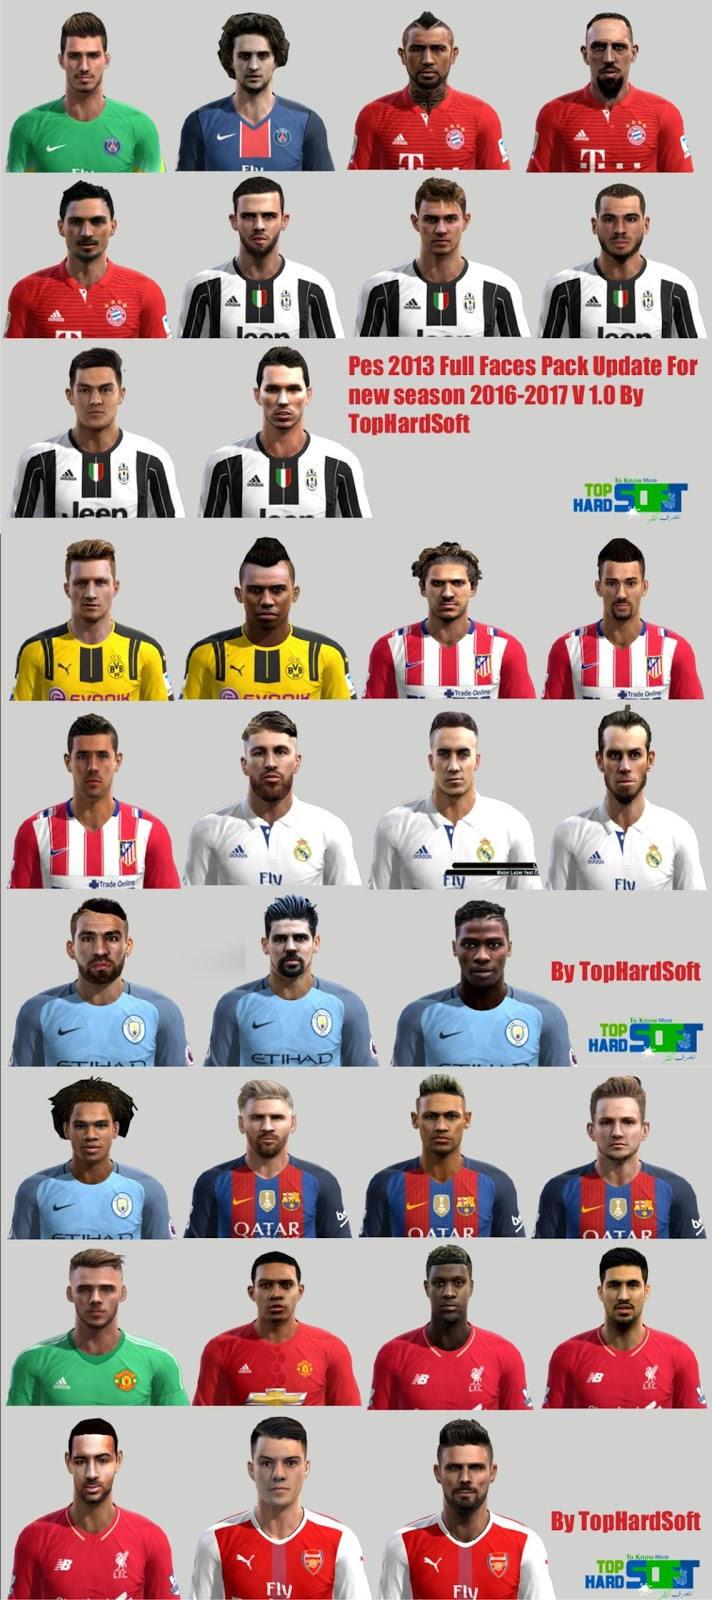 Pes 2013 Full Faces Pack Update For new season 2016/2017 V 1.0 By TopHardSoft